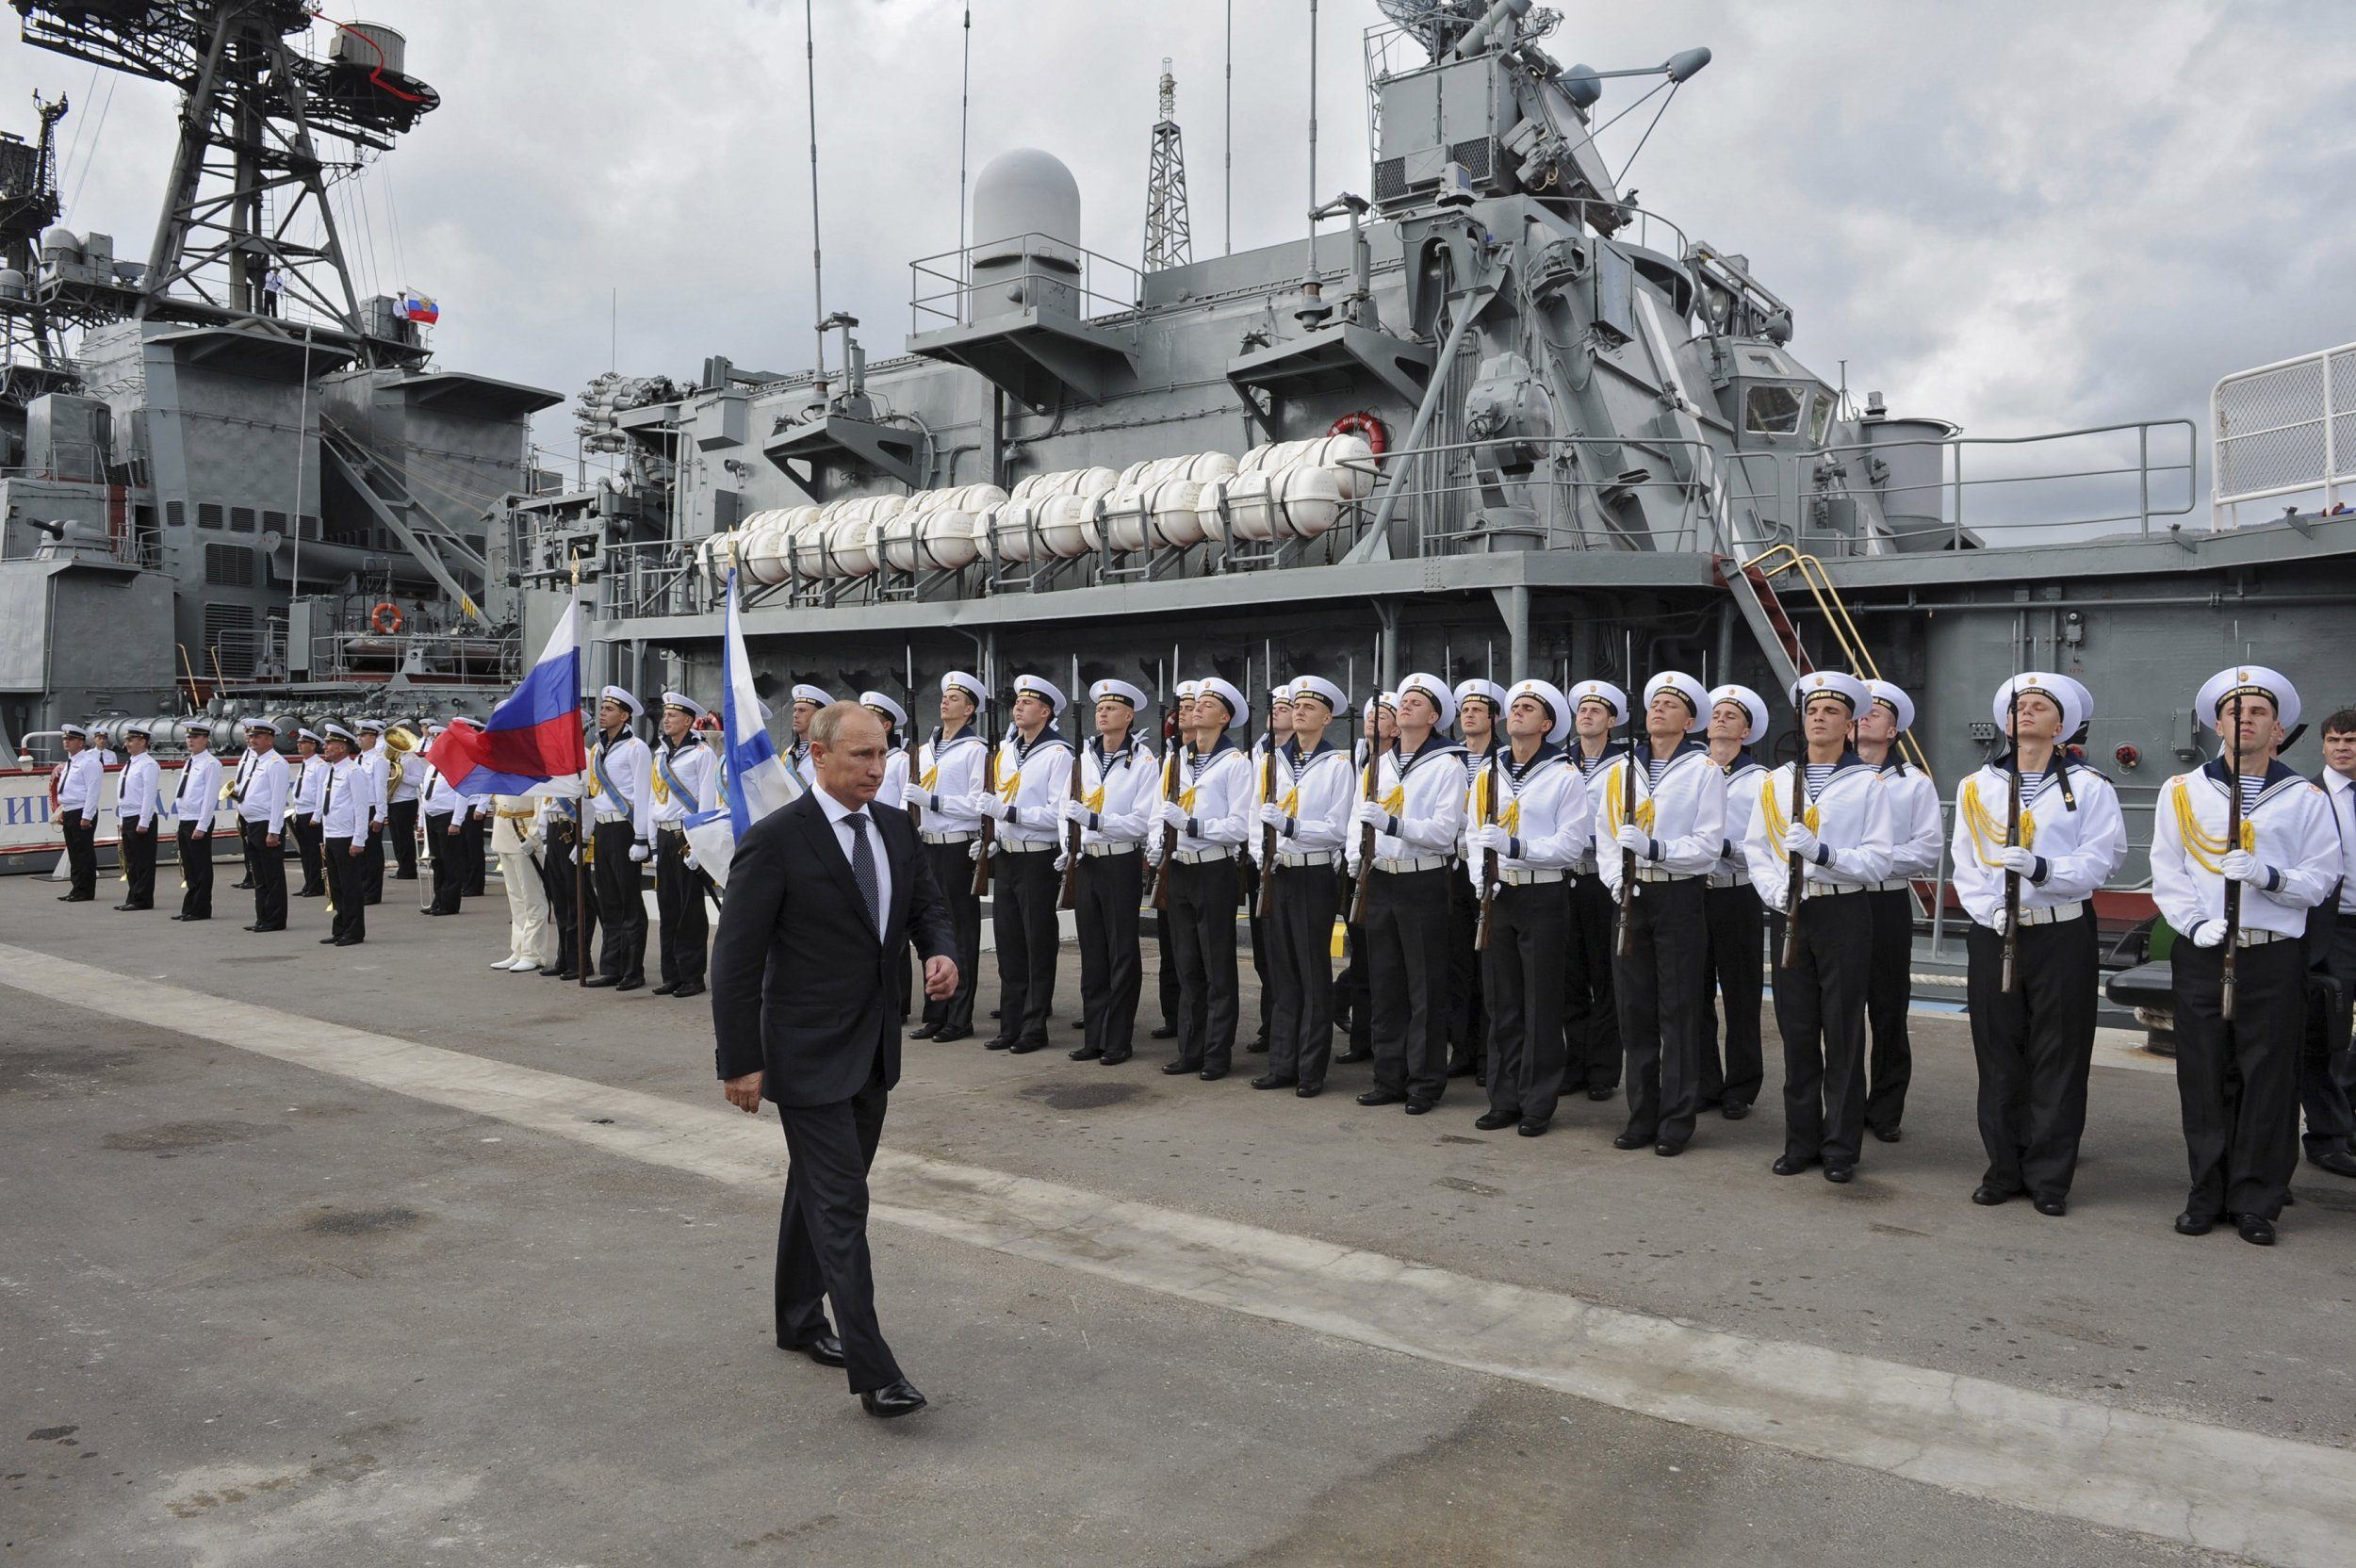 Putin and Black Sea Fleet